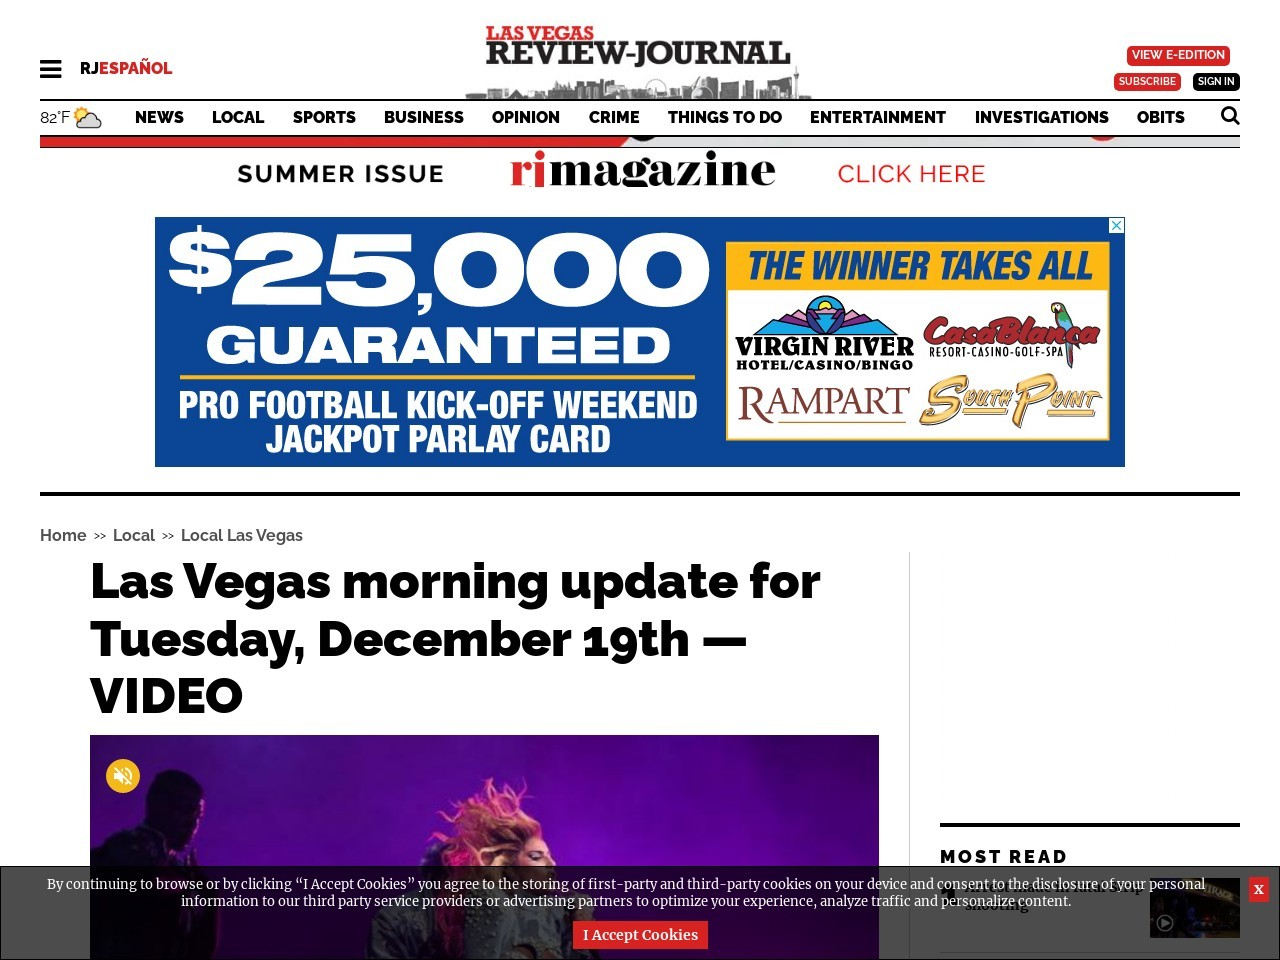 Las Vegas morning update for Tuesday, December 19th — VIDEO